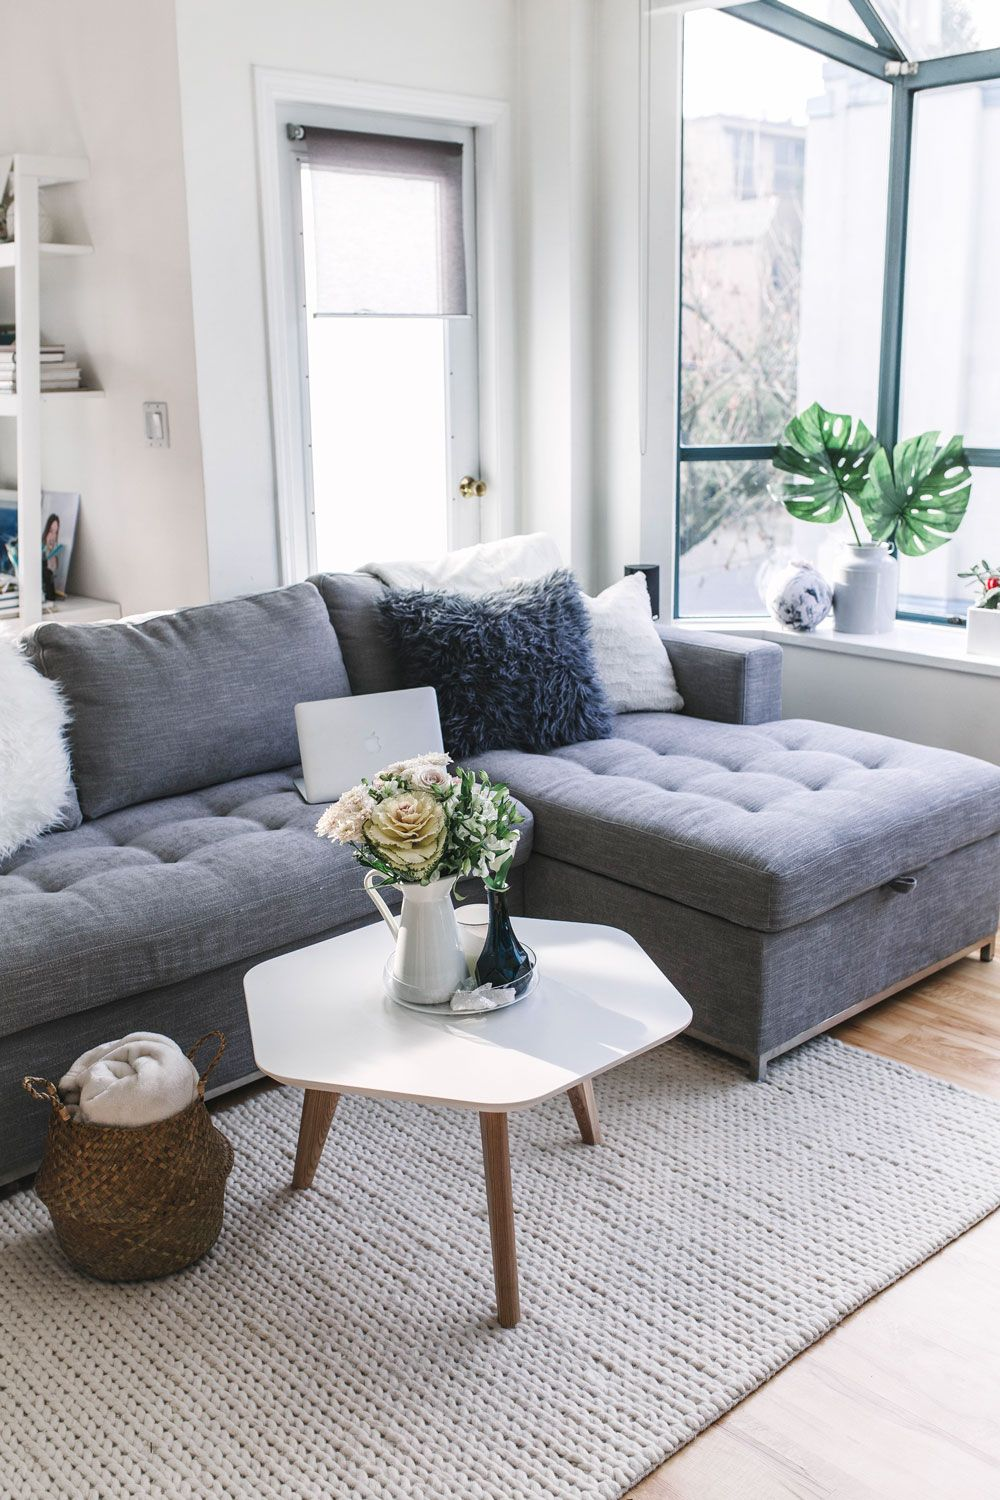 Whether you rent or own if you have a small space you need to check out todays post sharing the best sectional couch for small spaces today on tvob